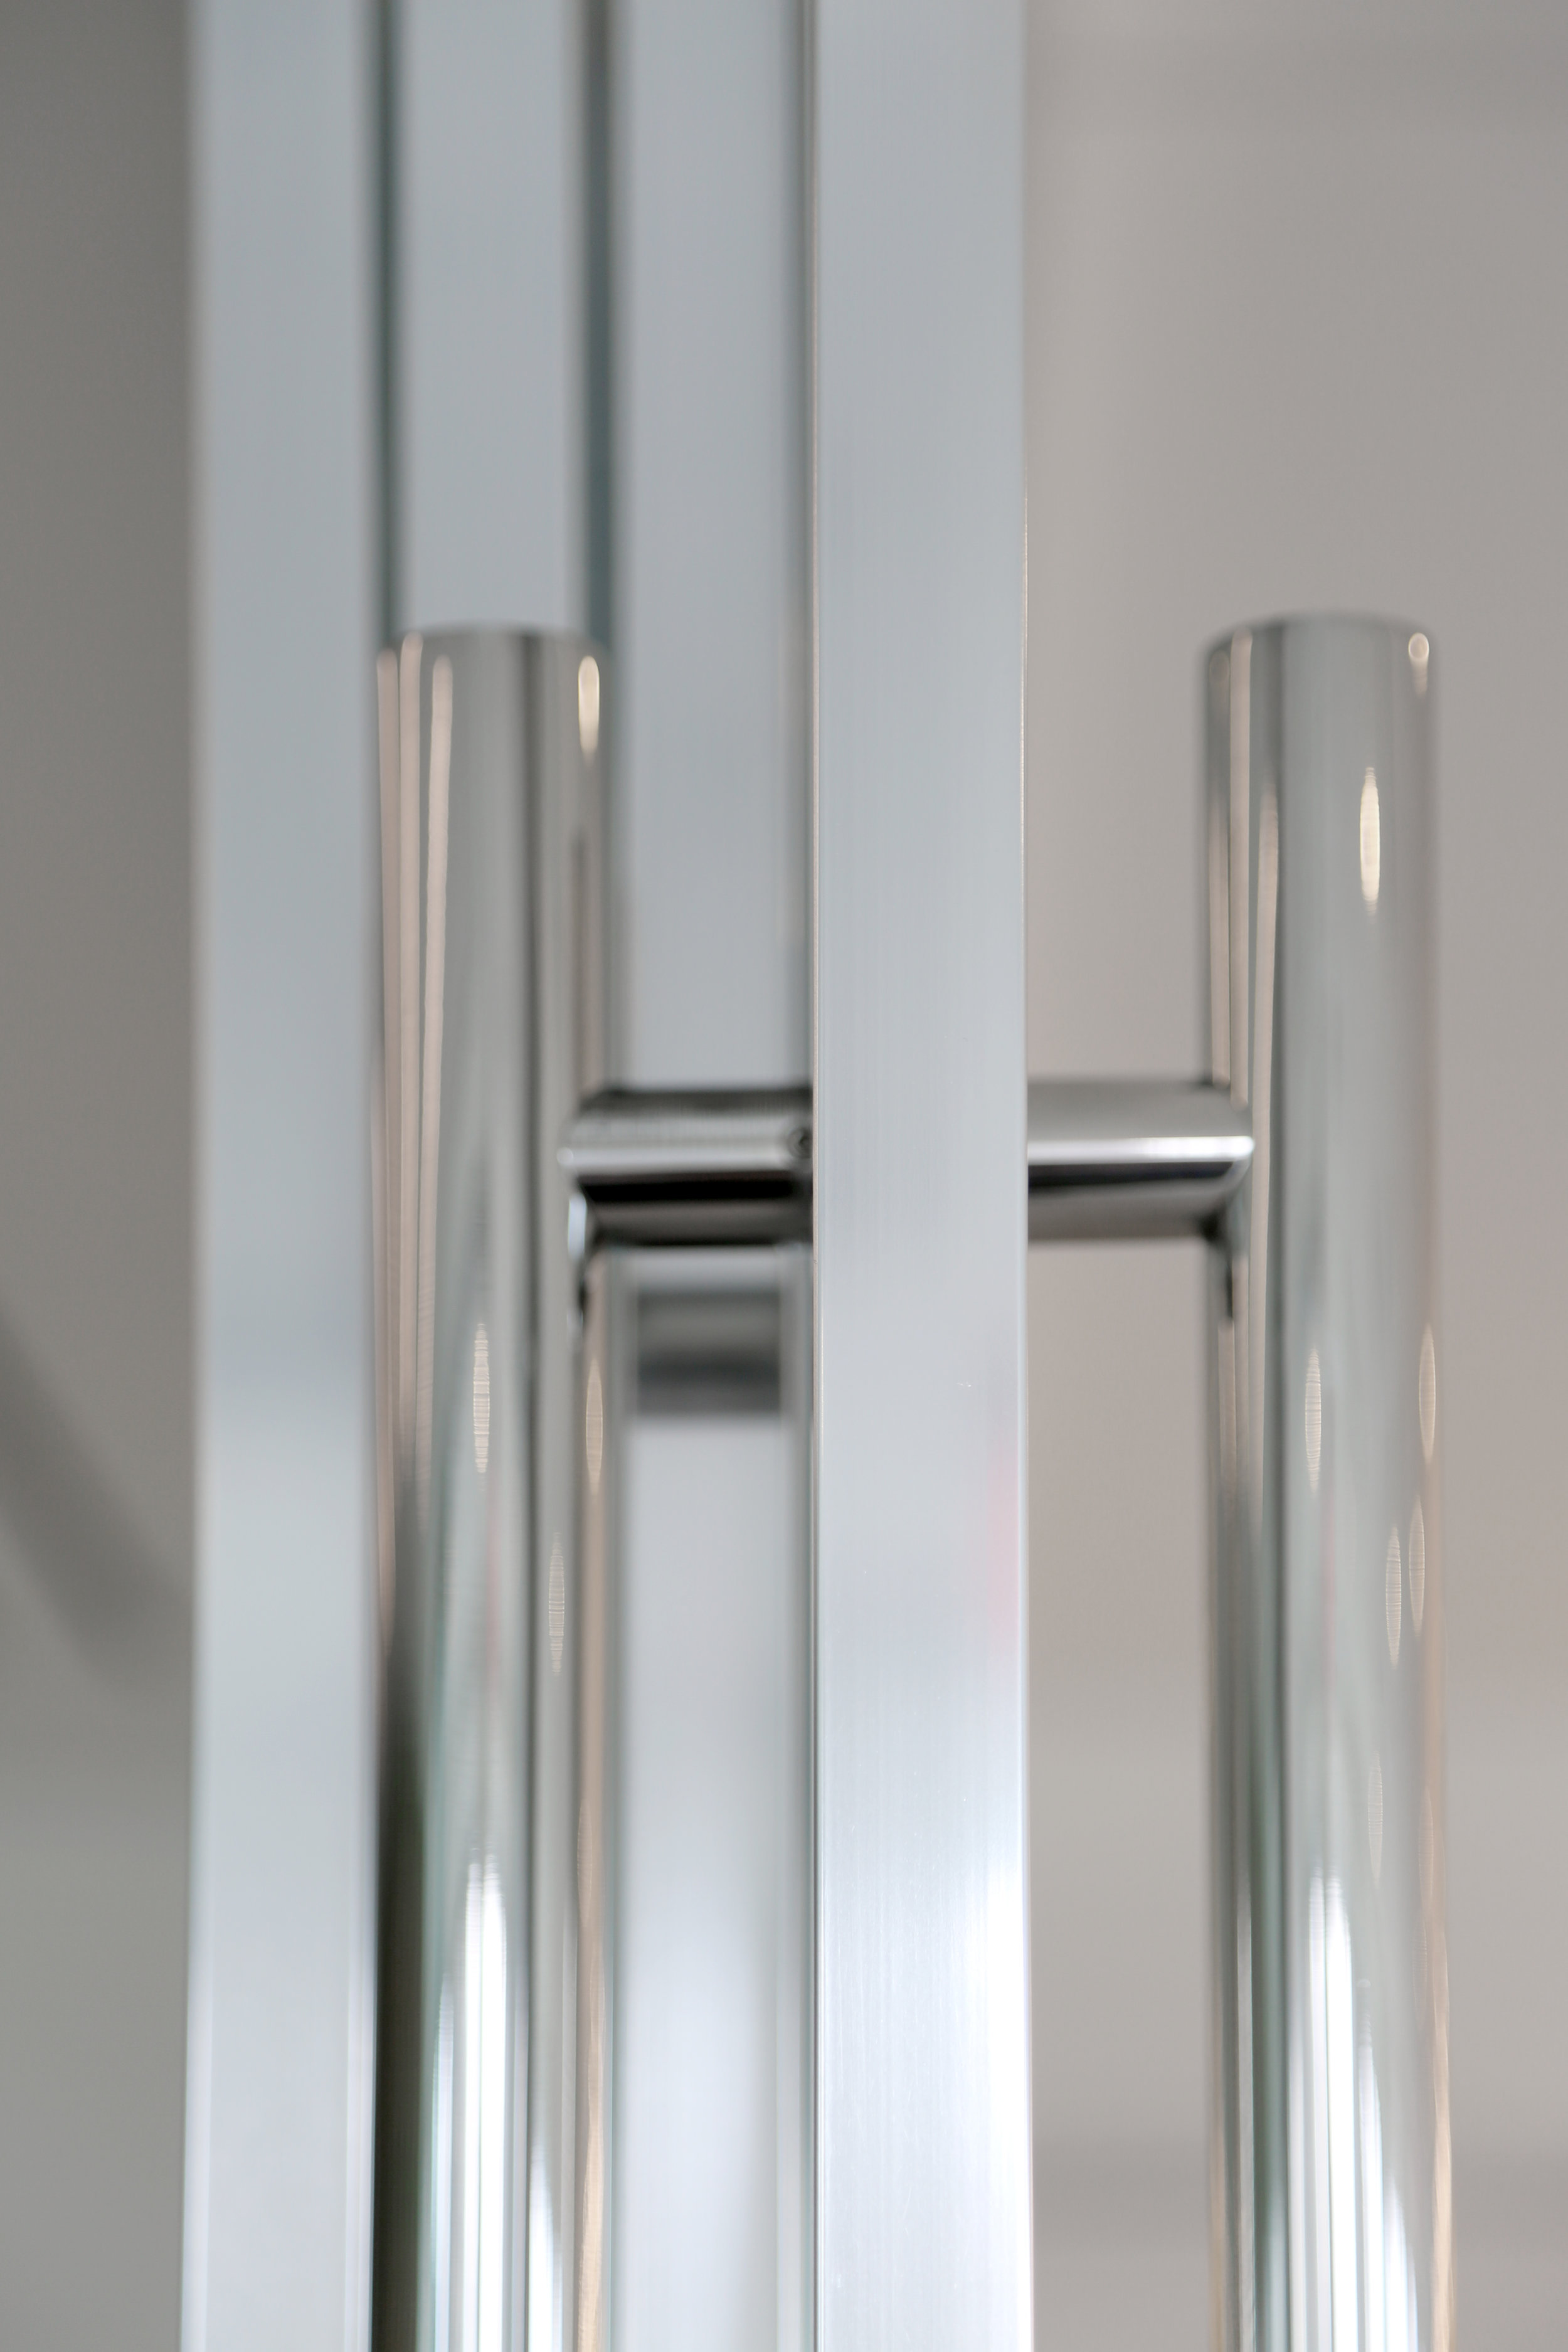 Polished Metal Ladder Pulls Glass Panel System - Spaceworks AI.jpg